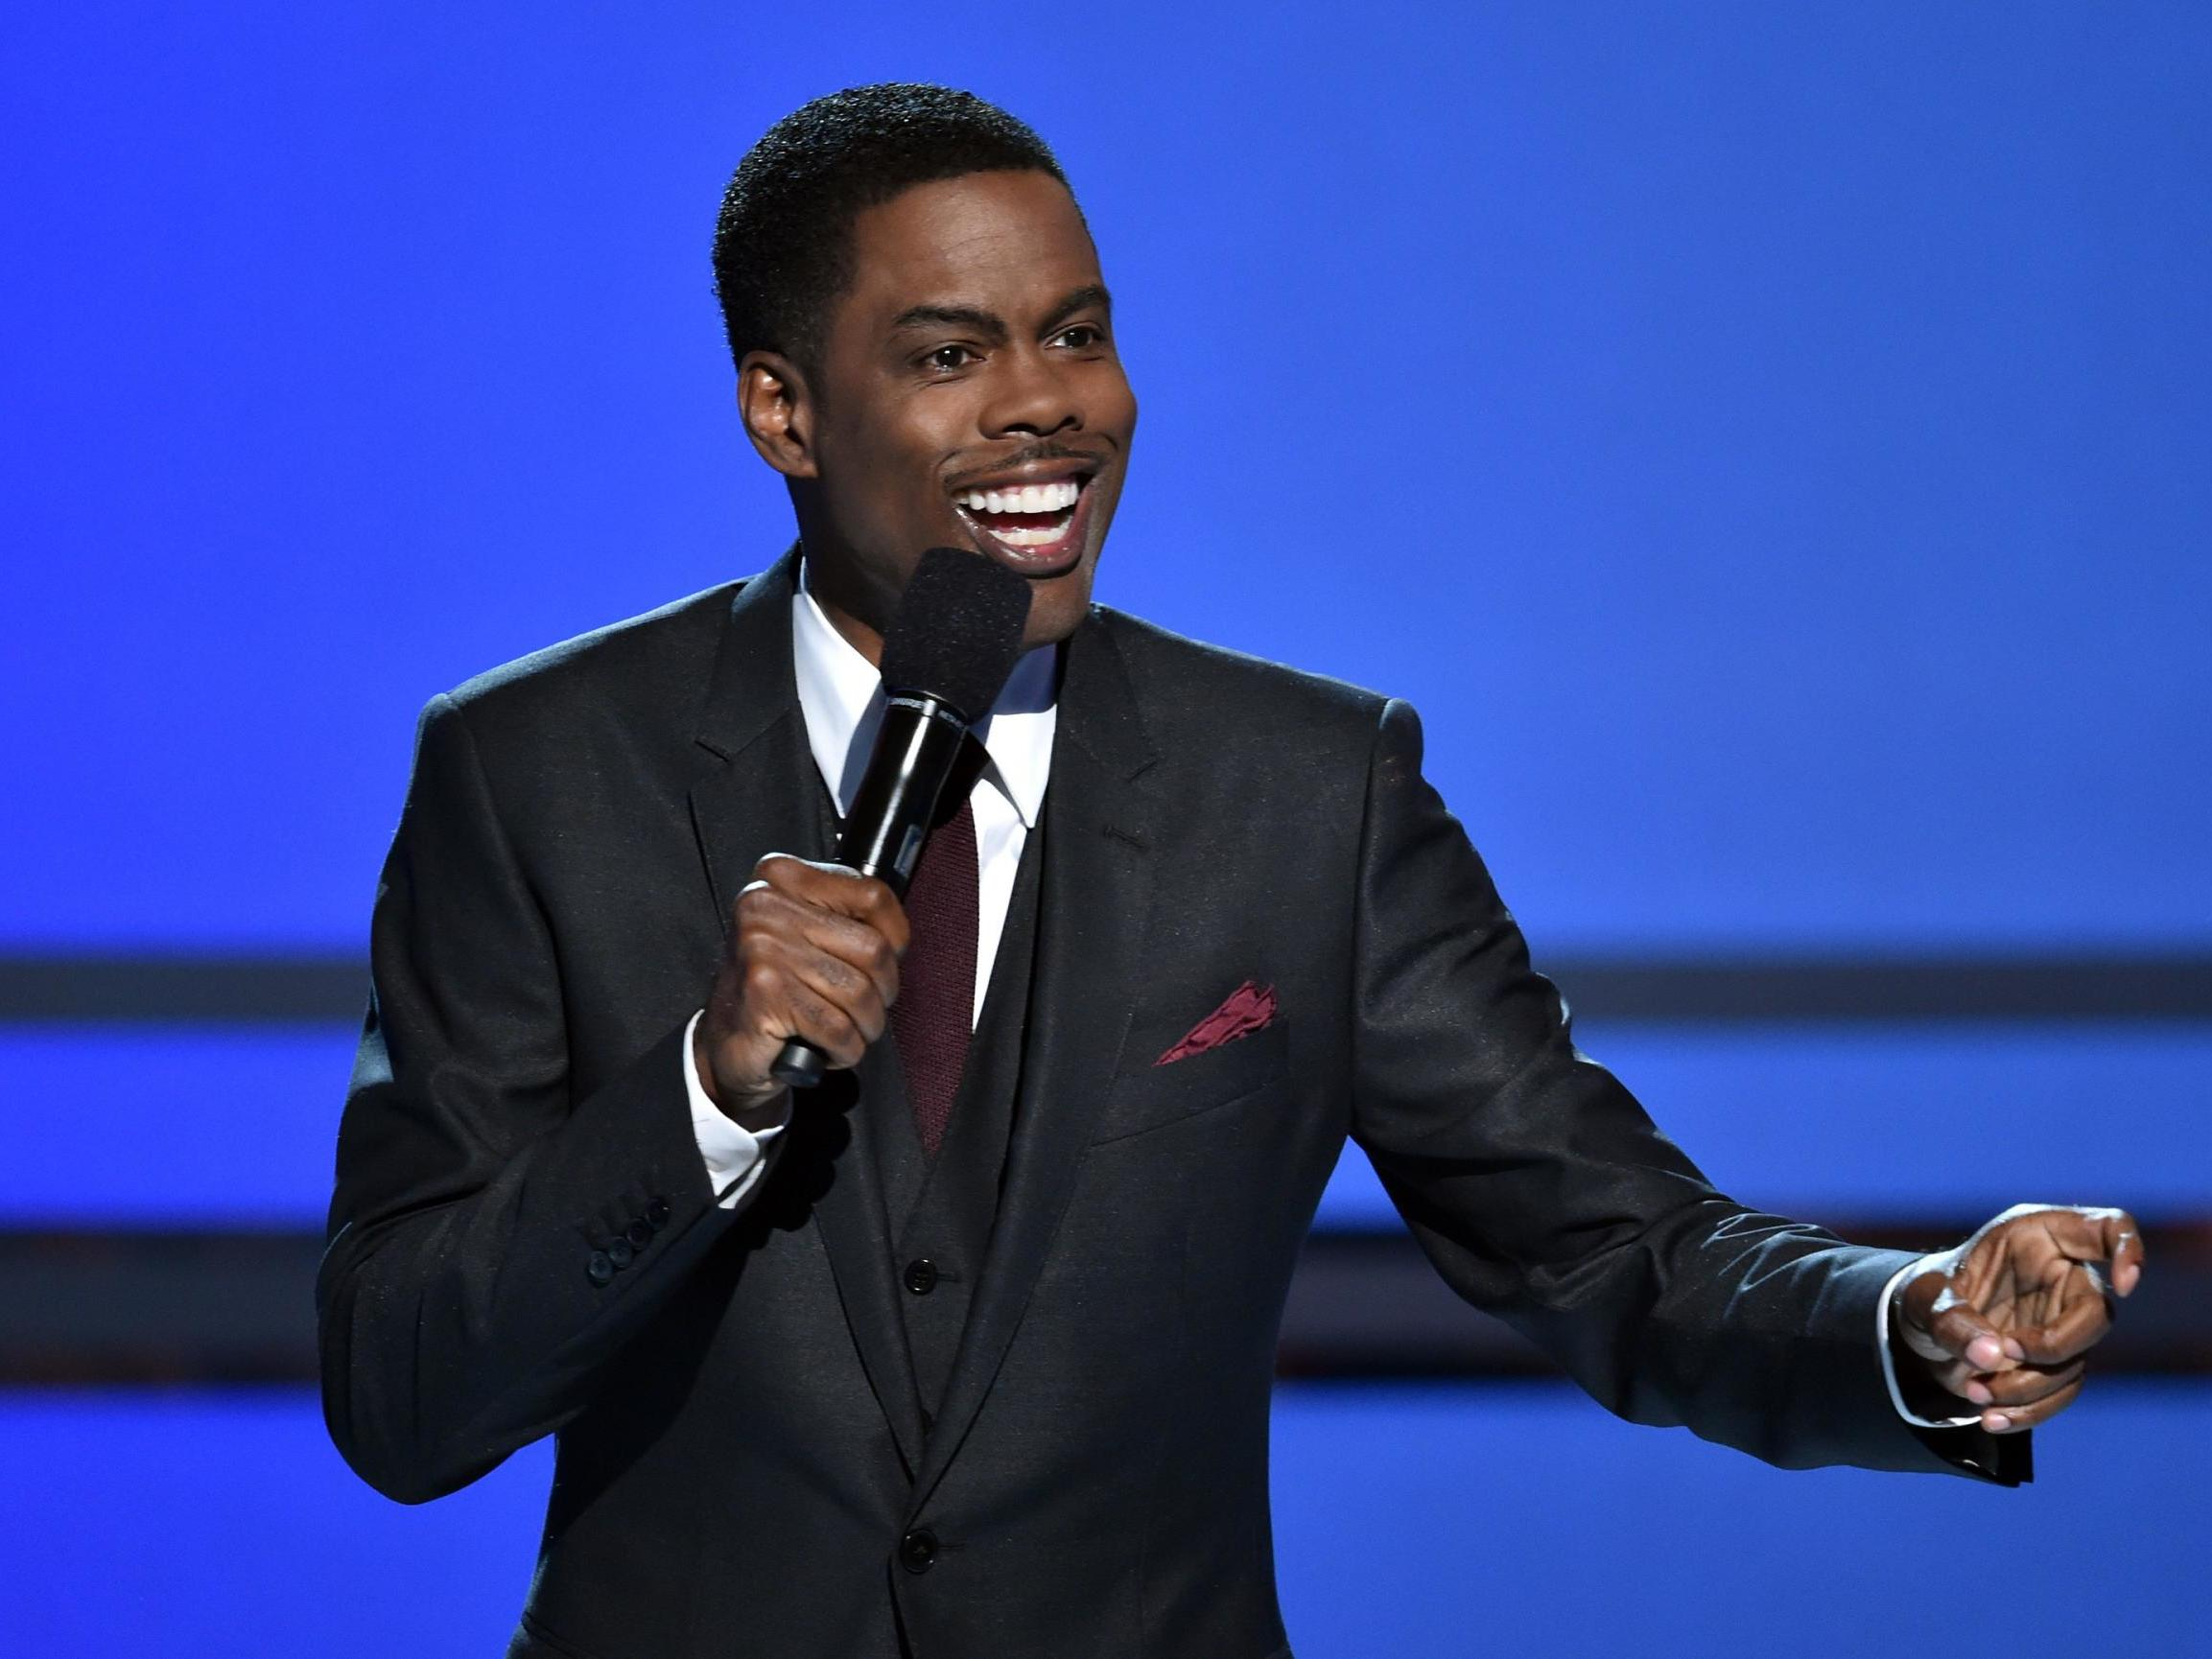 Chris Rock roasts state of comedy: 'I can't say anything